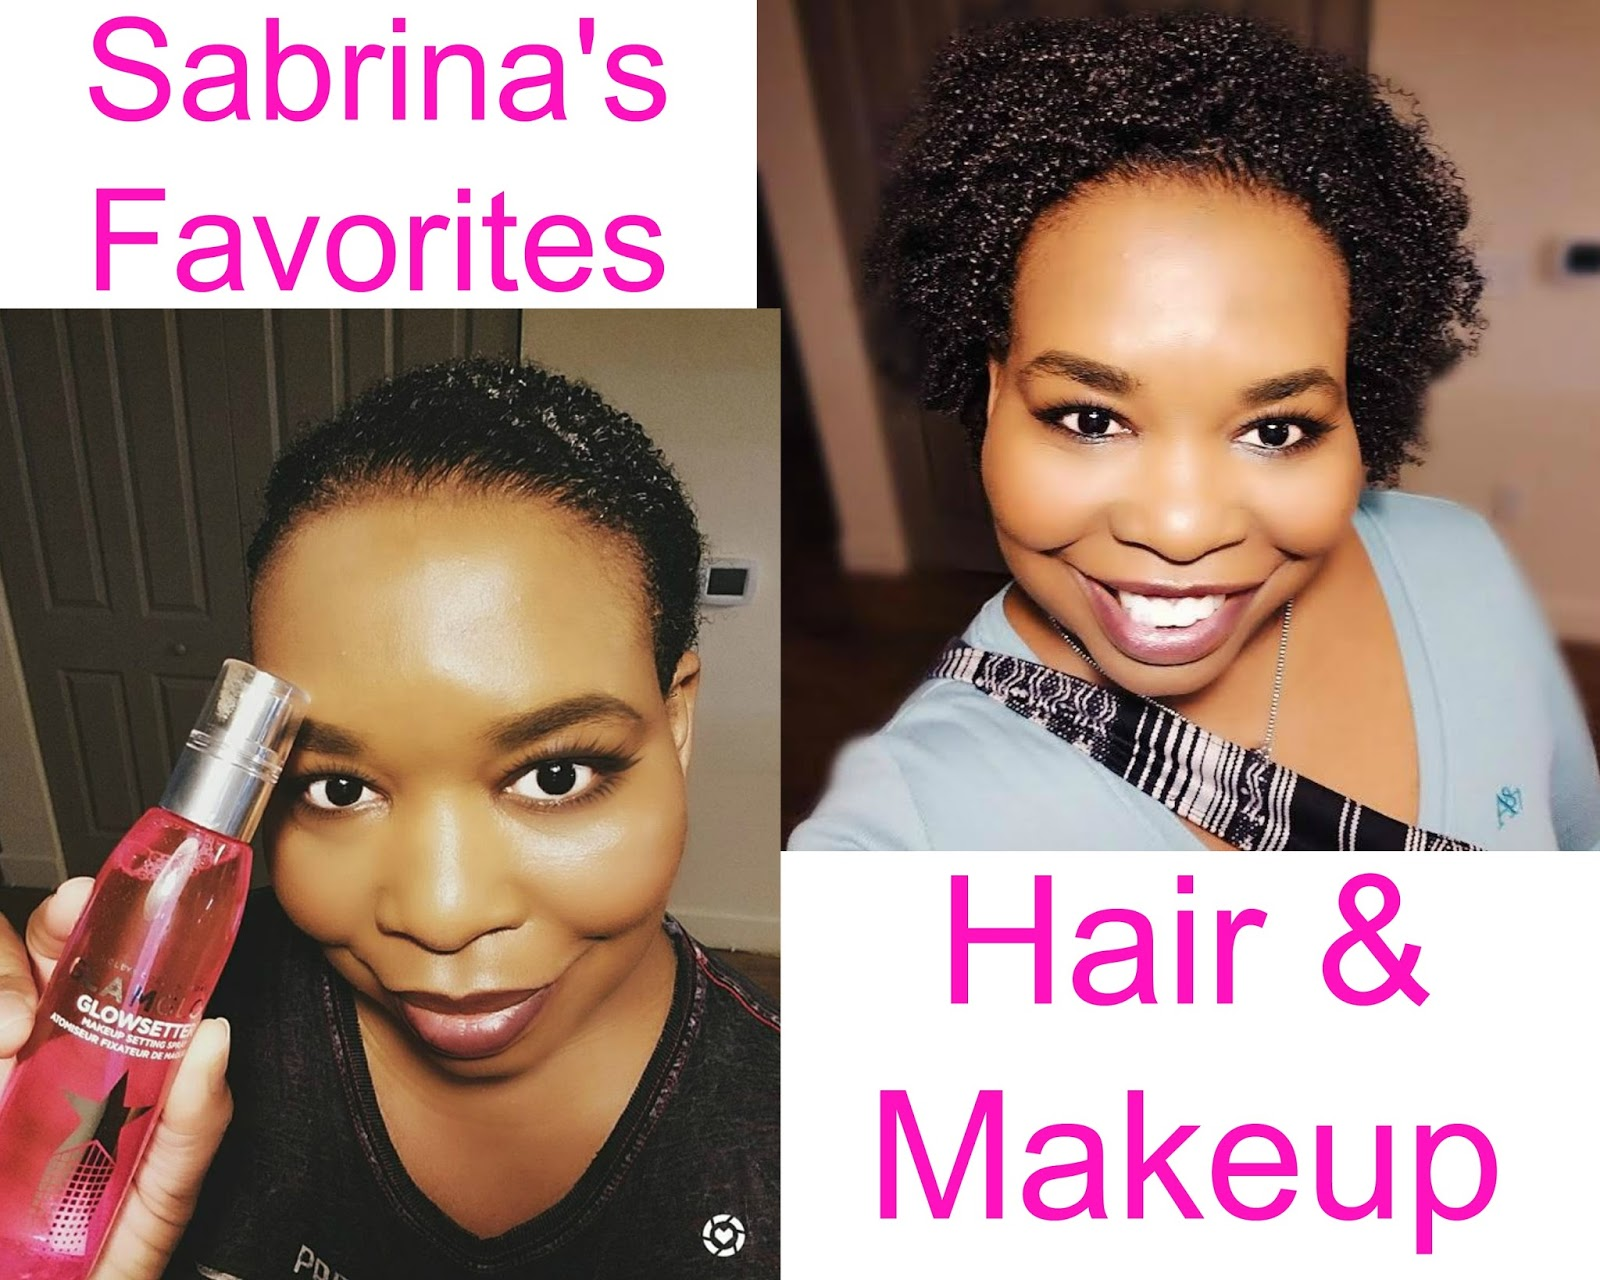 Check out my favorite hair and makeup products  in my Amazon Shop that I absolutely love! There's something here for everybody!